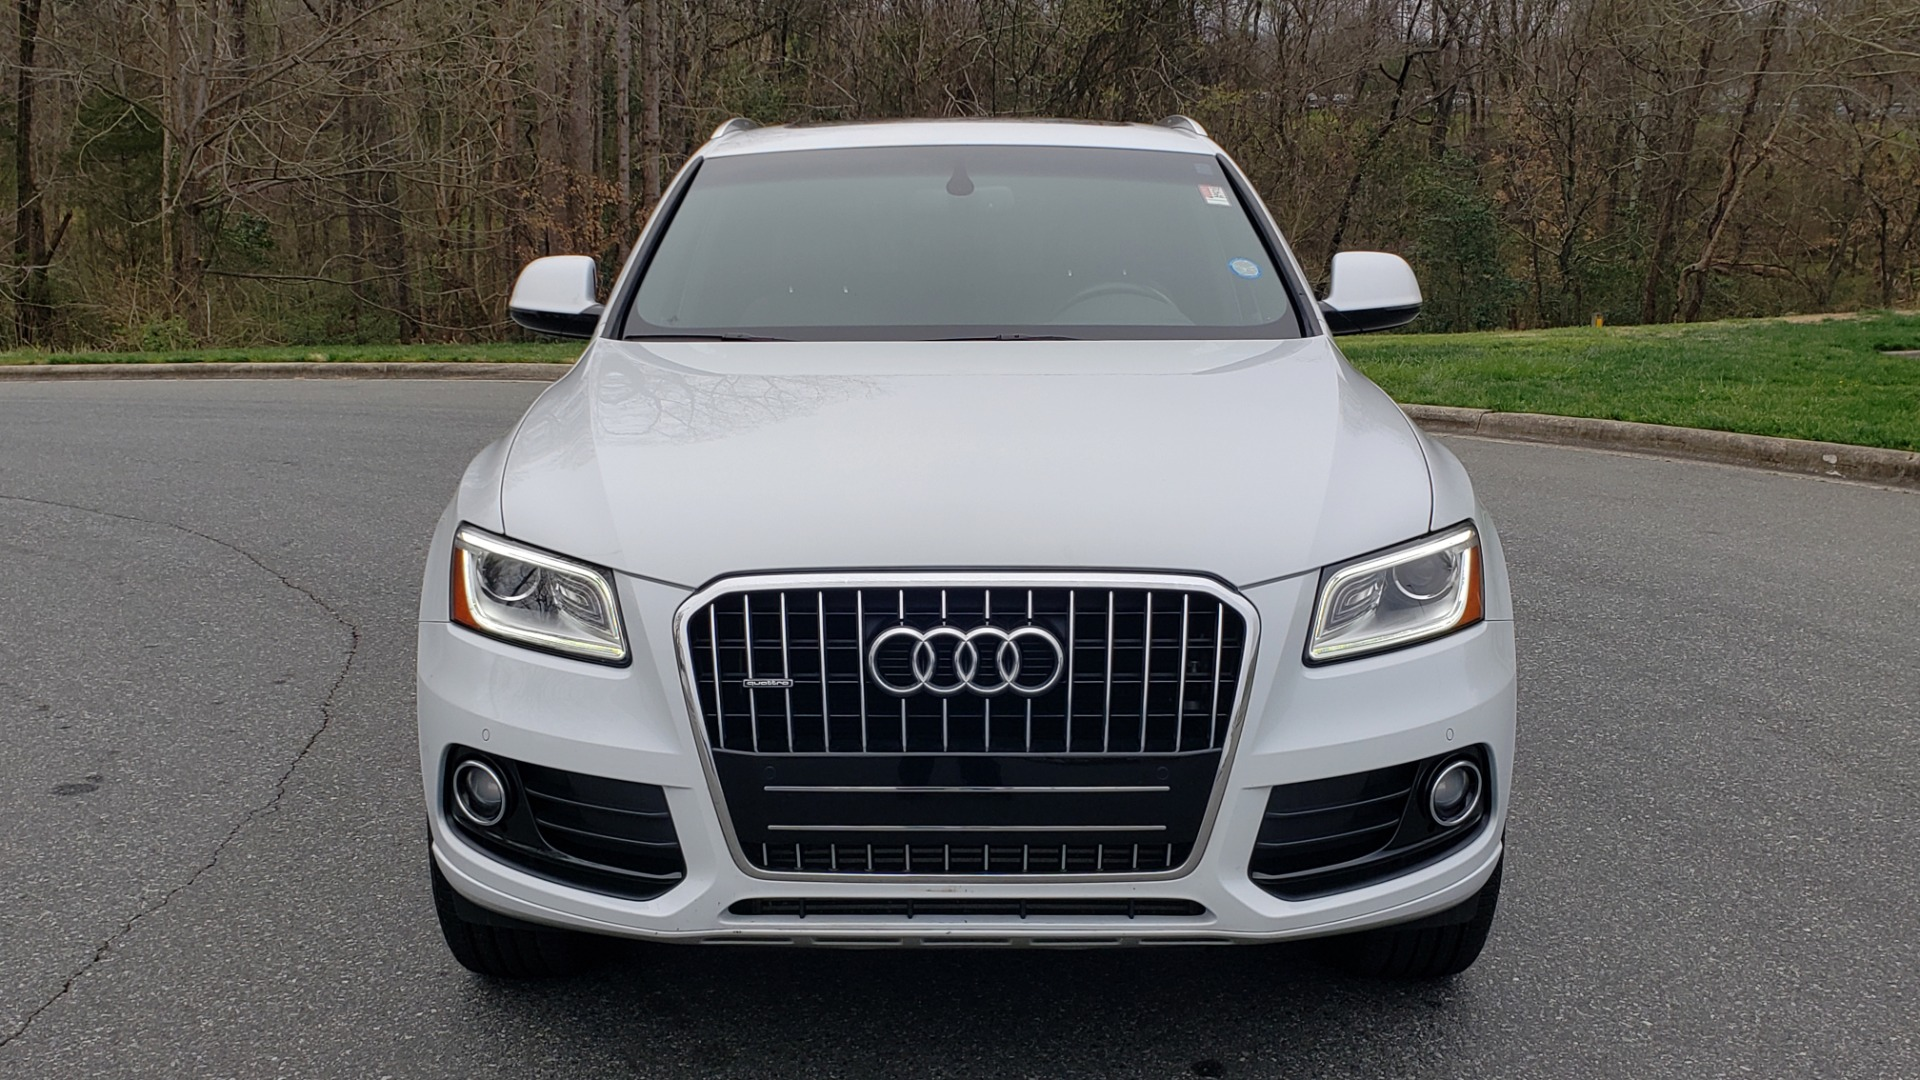 Used 2017 Audi Q5 PREMIUM PLUS / TECH / NAV / PANO-ROOF / B&O SND / REARVIEW for sale Sold at Formula Imports in Charlotte NC 28227 24